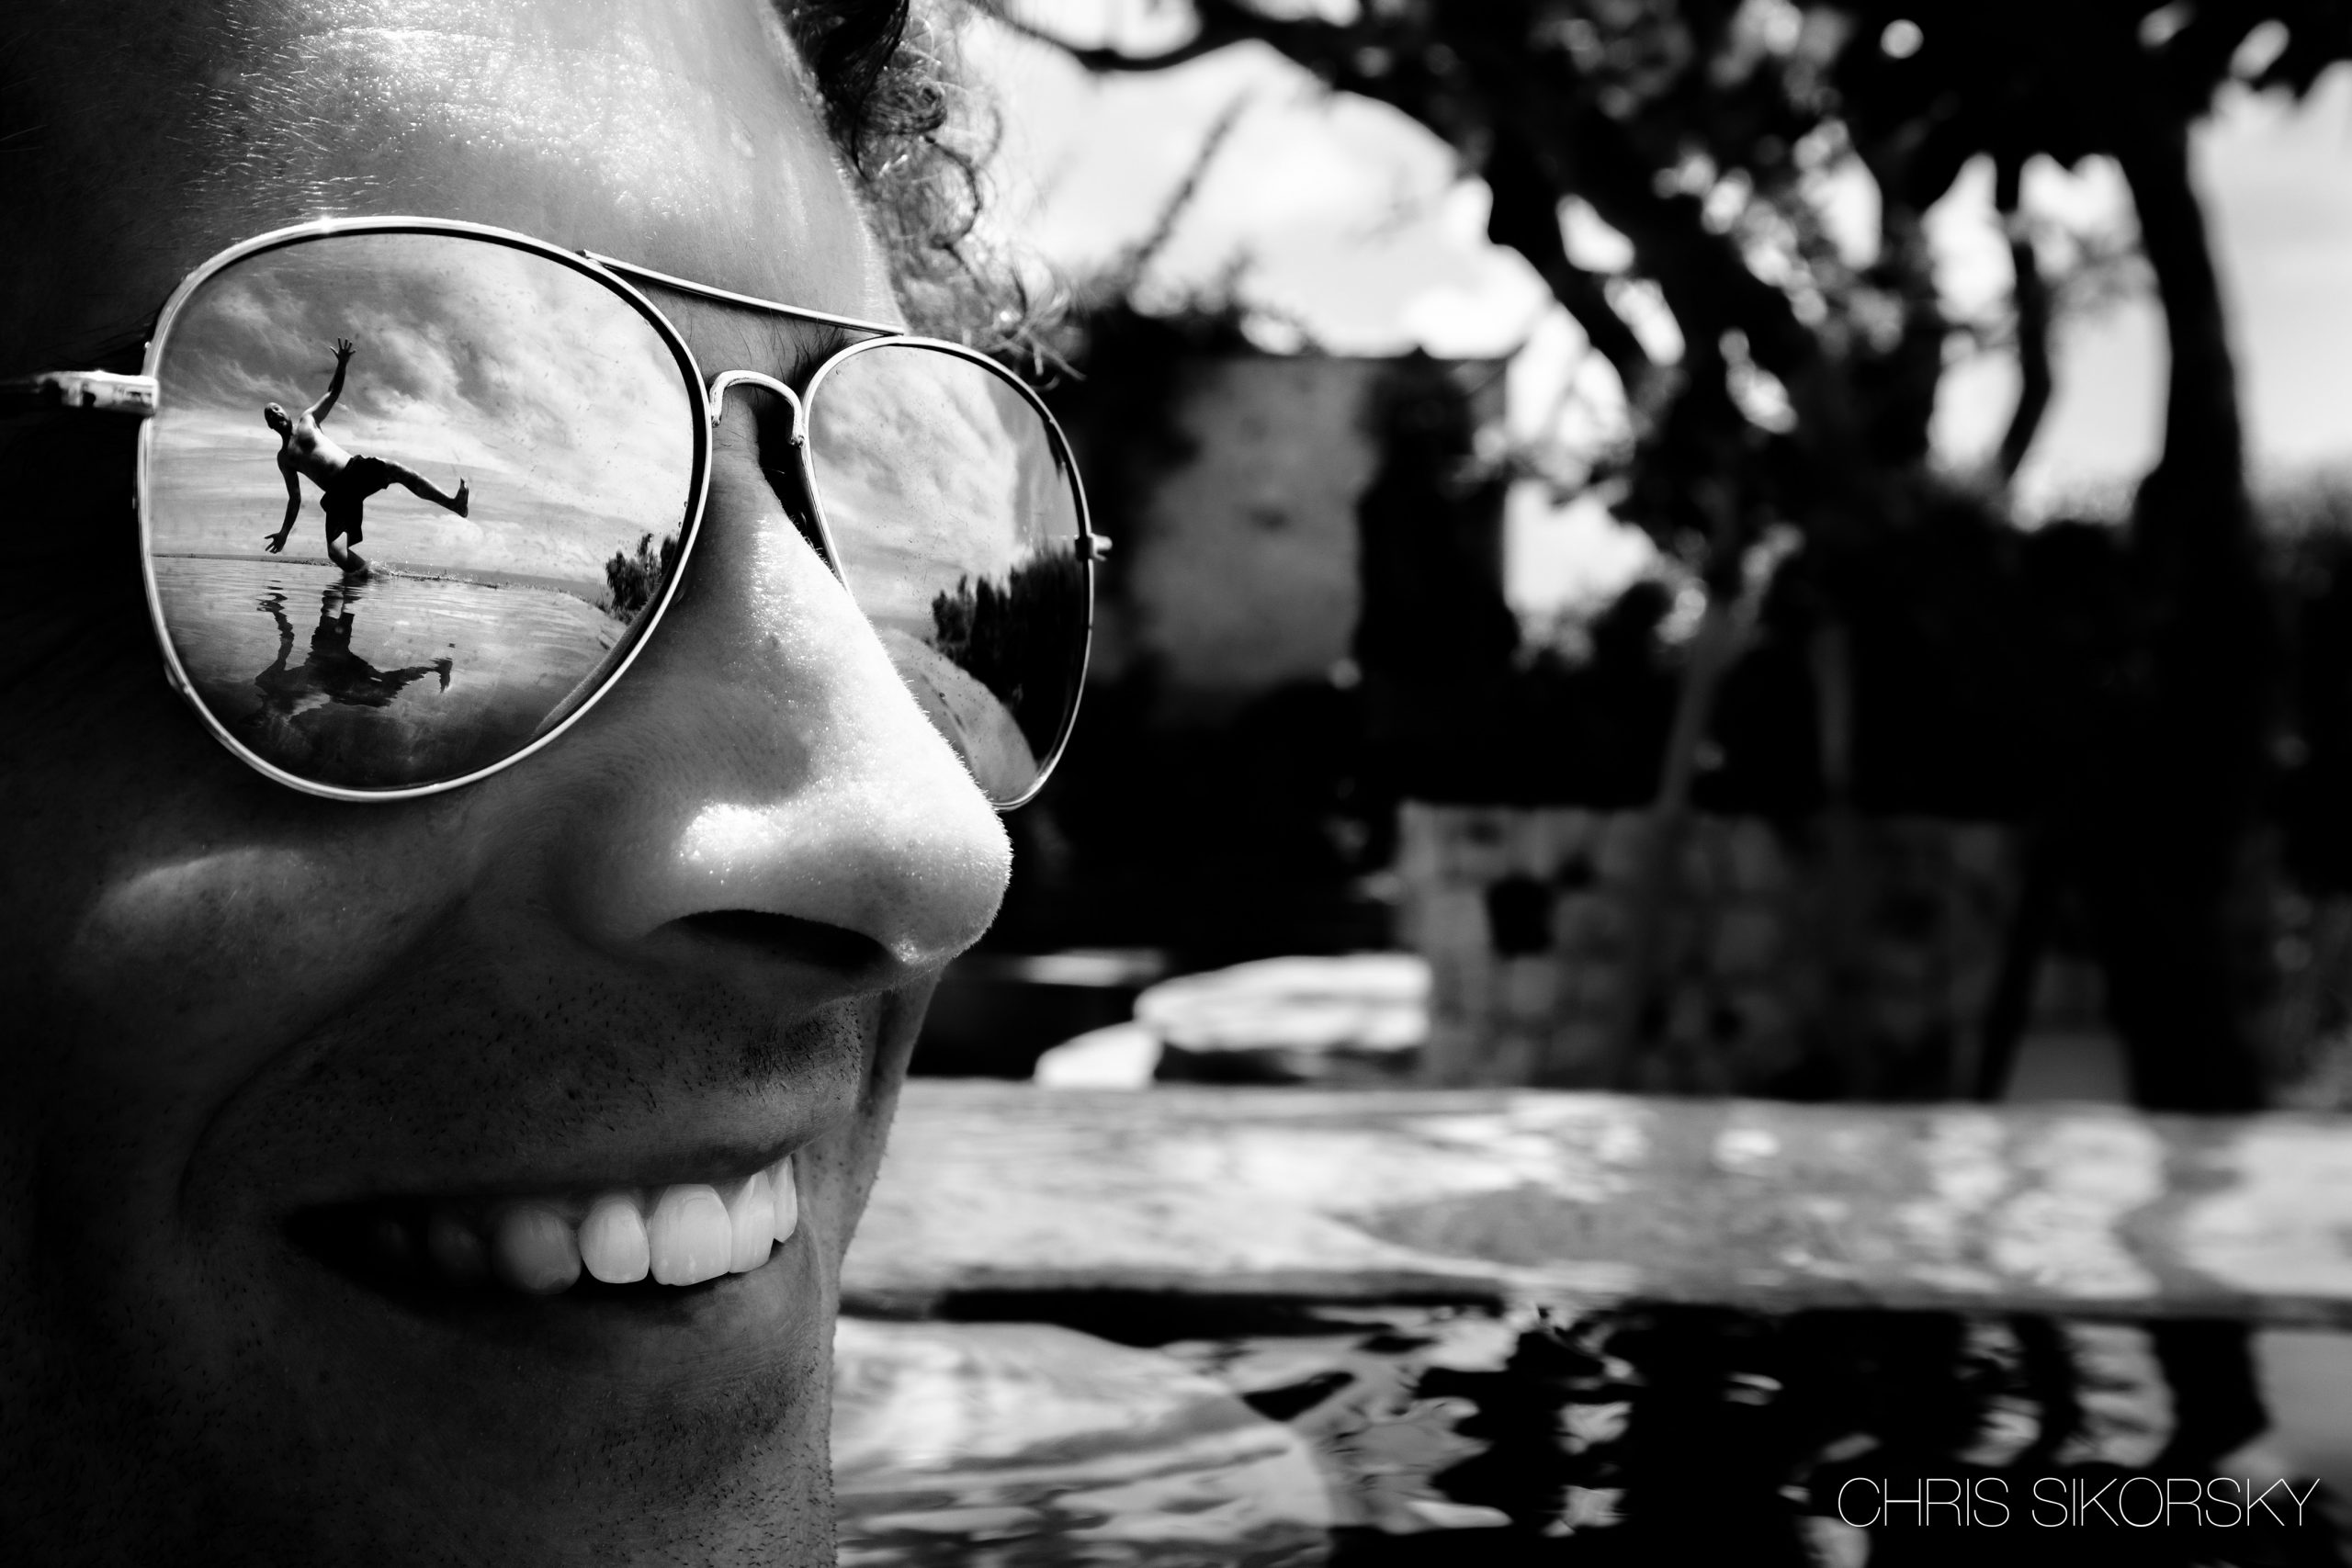 Reflection of a man jumping into the water is seen on a man's sunglasses